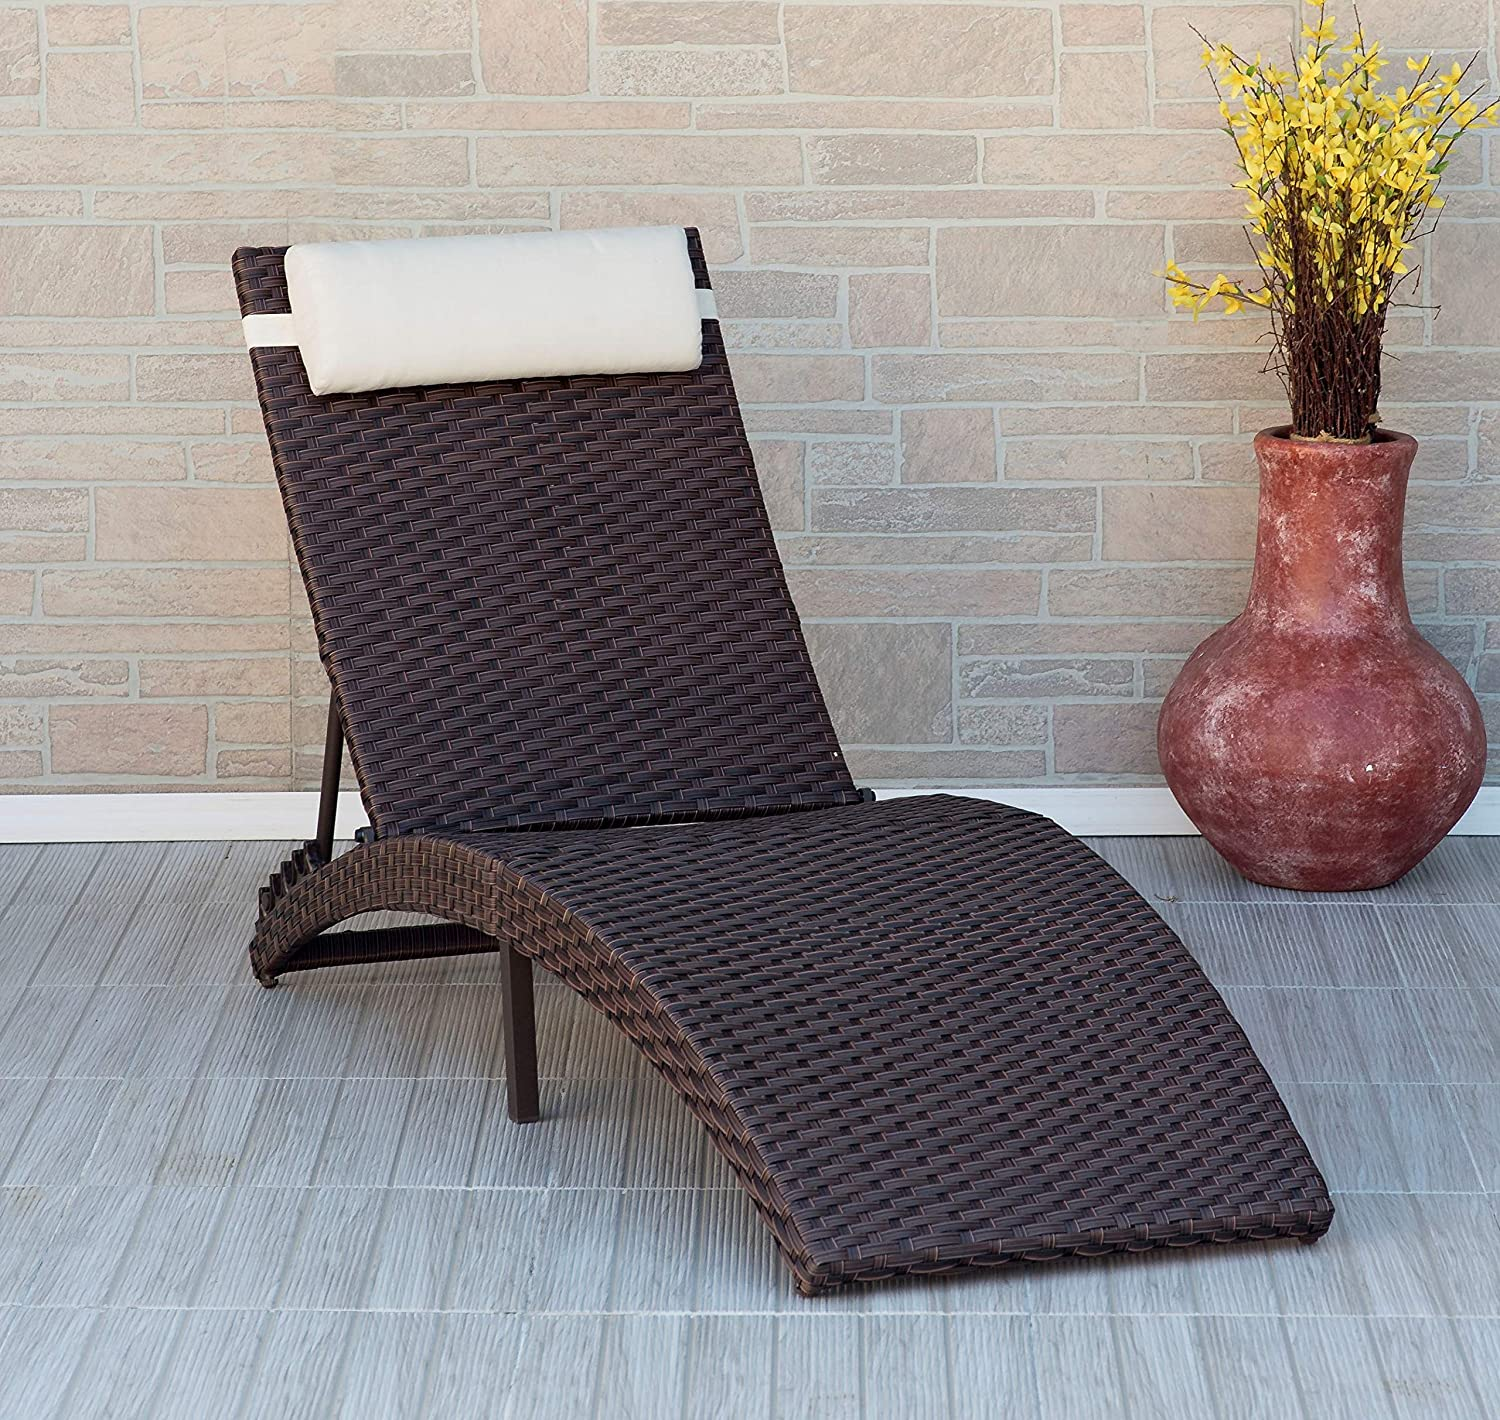 Atlantic Folding Rome 1-Piece Patio Lounger with Cushion Wicker, Ideal for Outdoors and Poolside : Garden & Outdoor